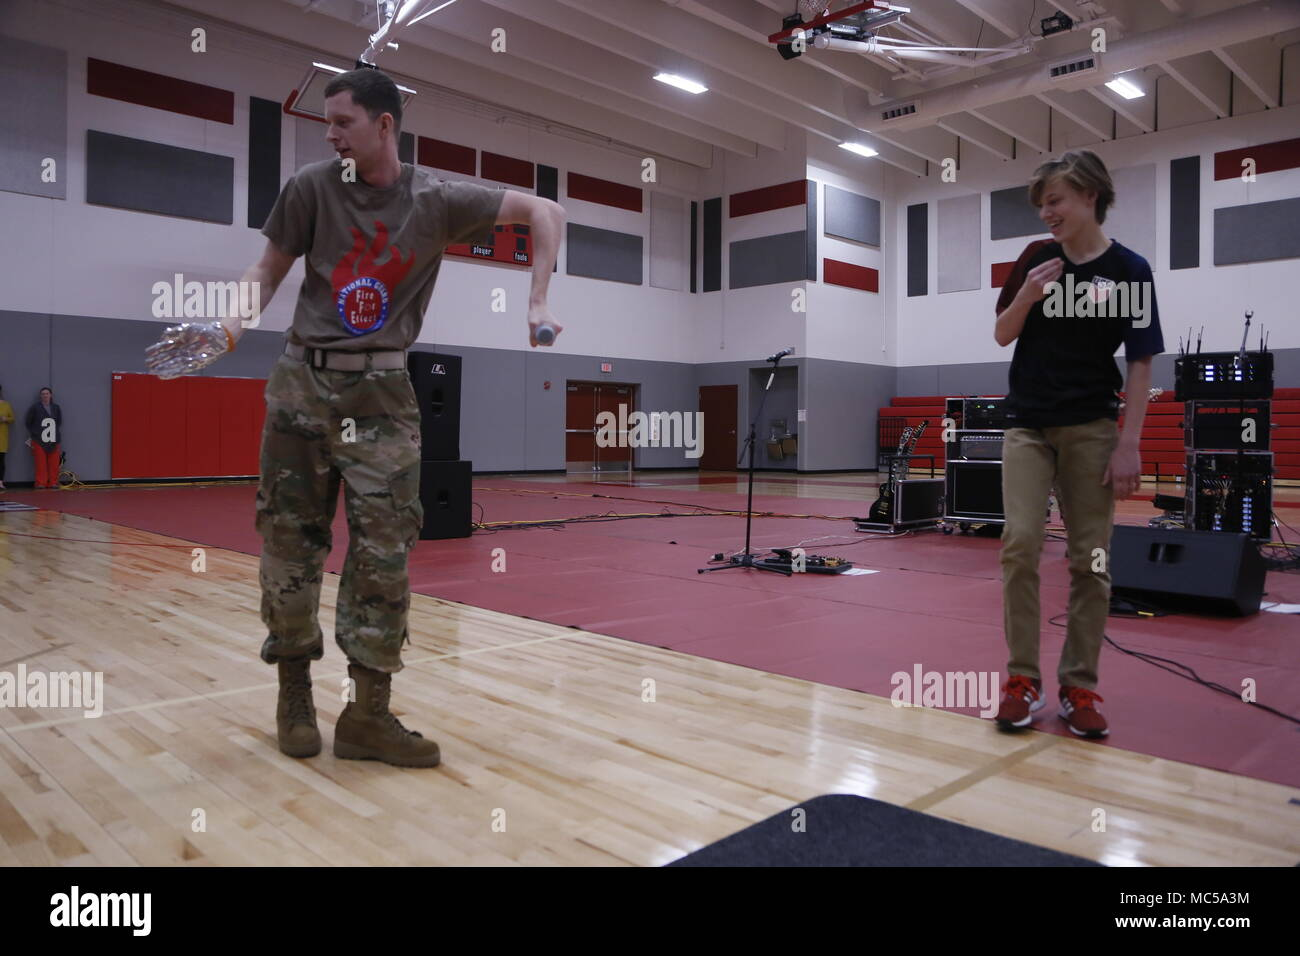 SPC Zach Nickerson performs Michael Jackson's 'Billie Jean' with the help of a Mexico Junior High School student in Mexico, MO January 25, 2018. This was Nickerson's first tour with the band. - Stock Image